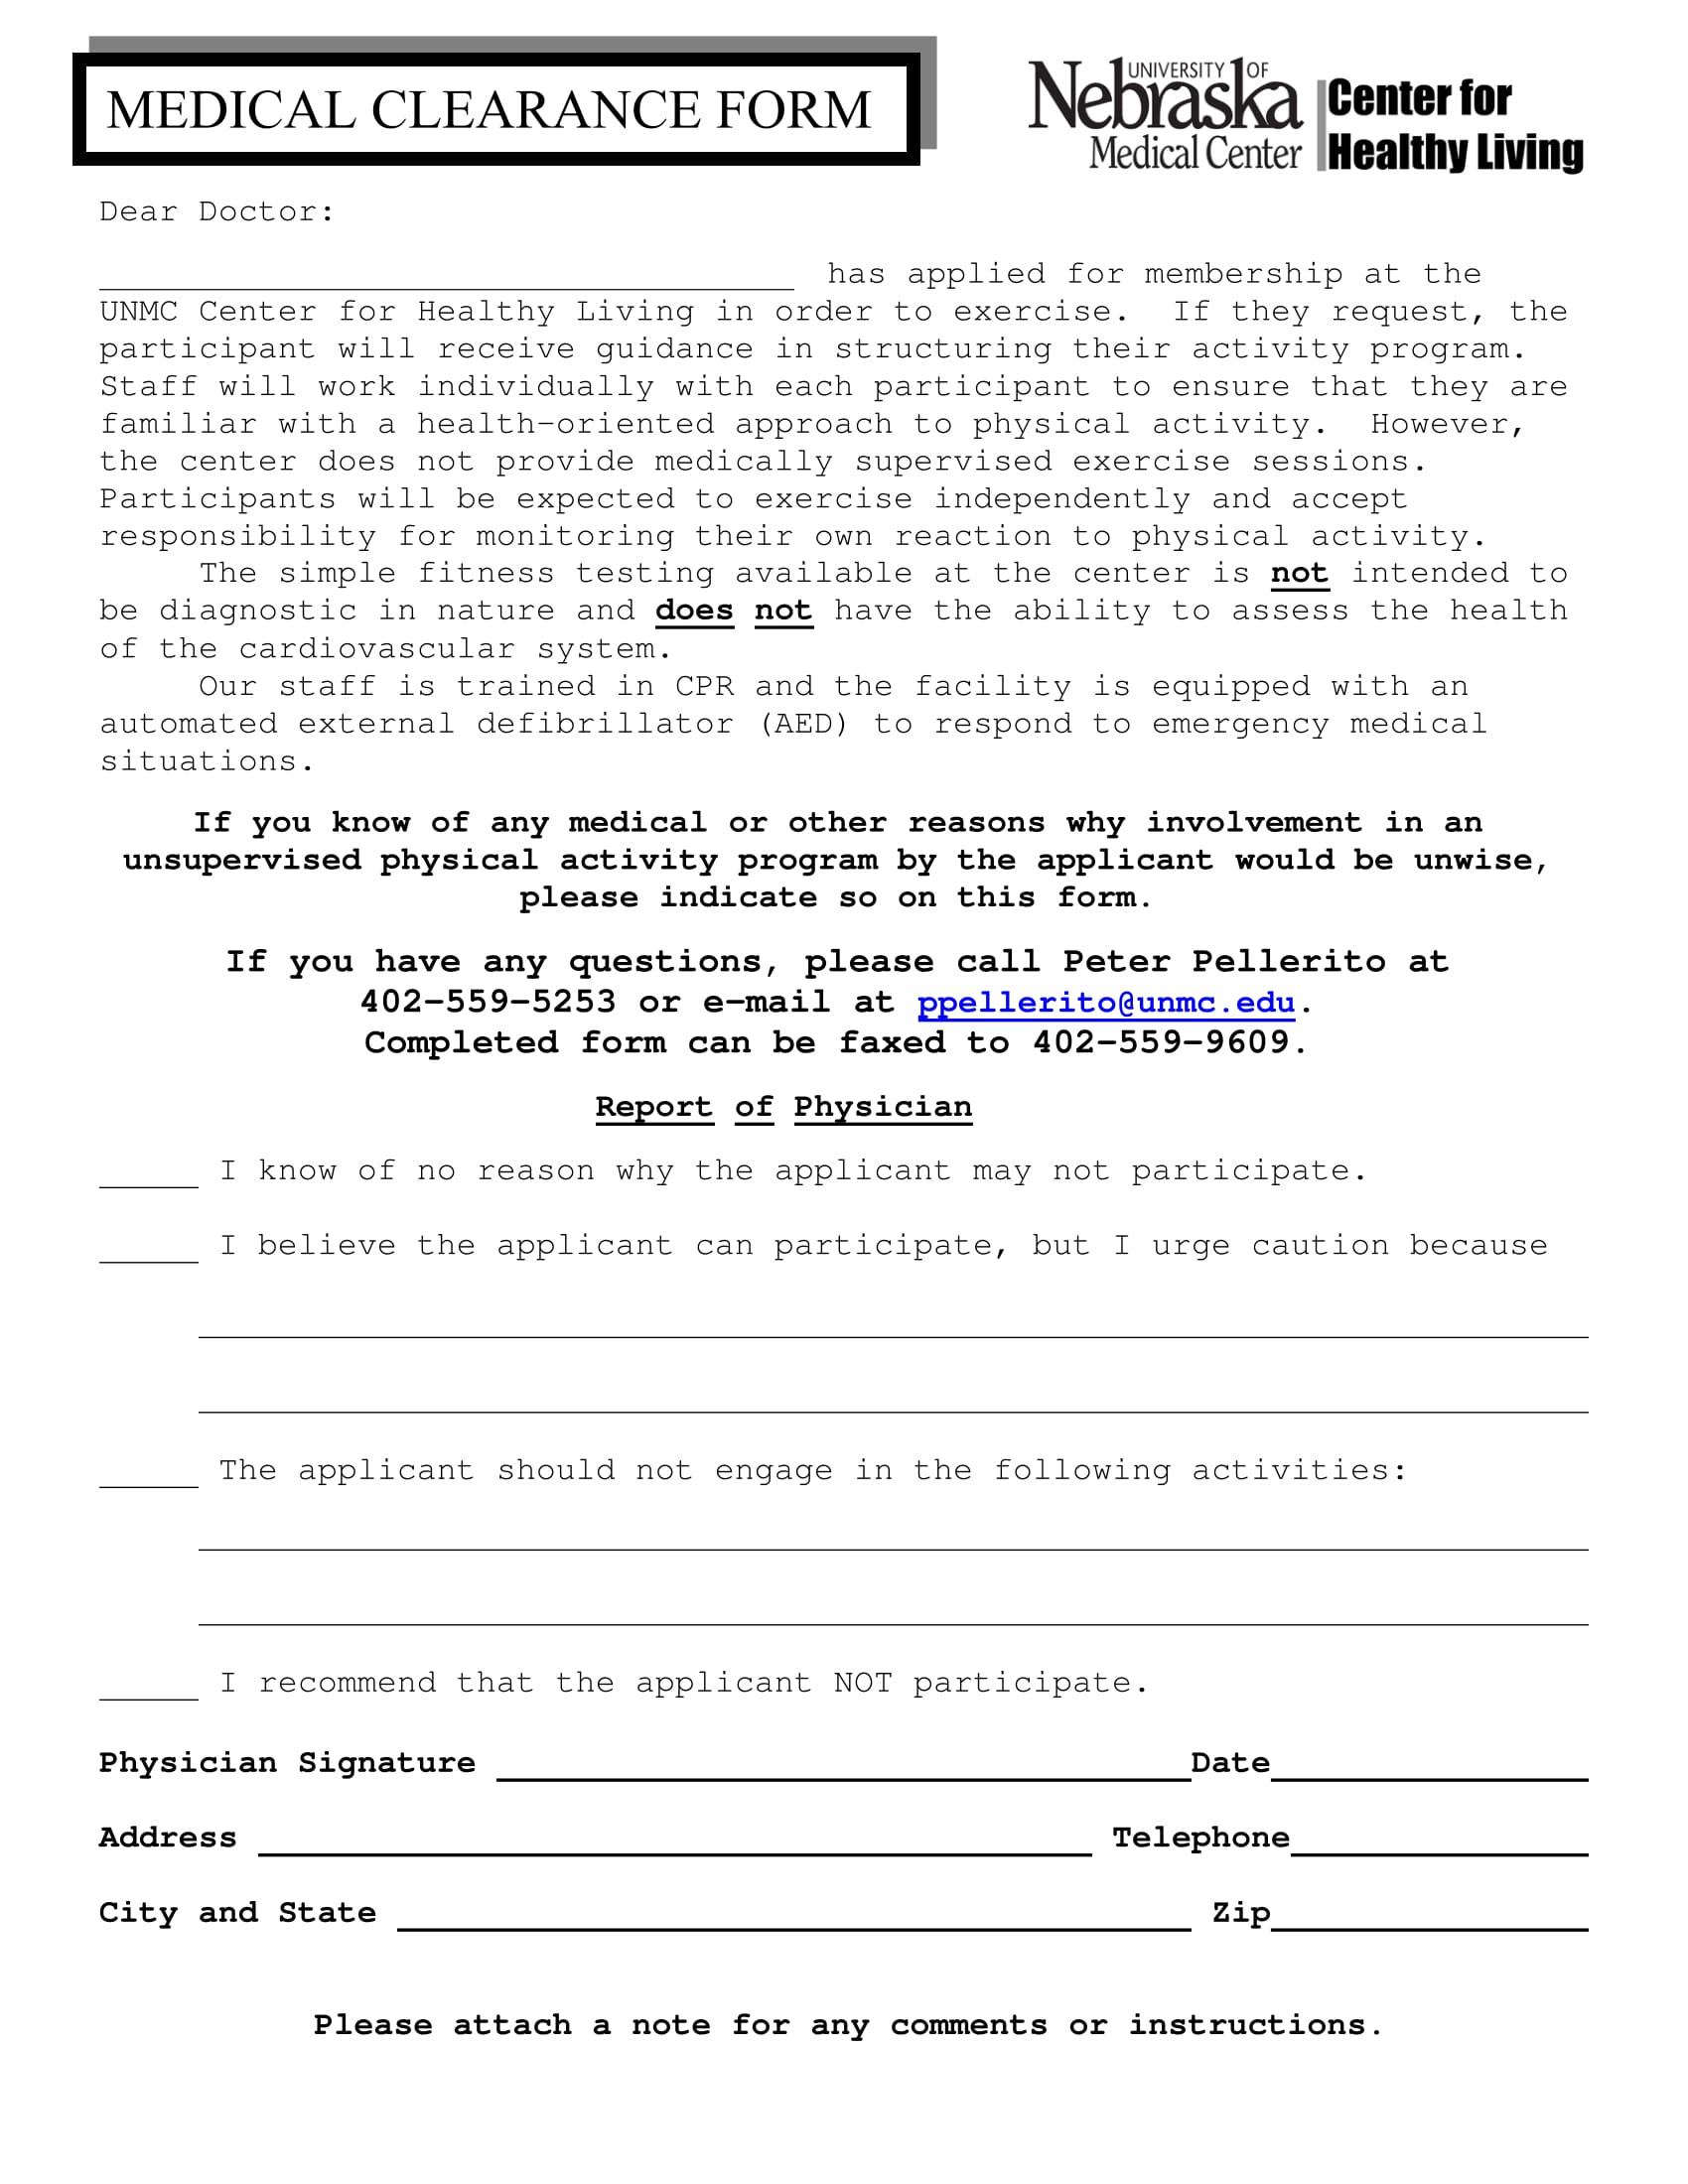 member medical clearance form 1